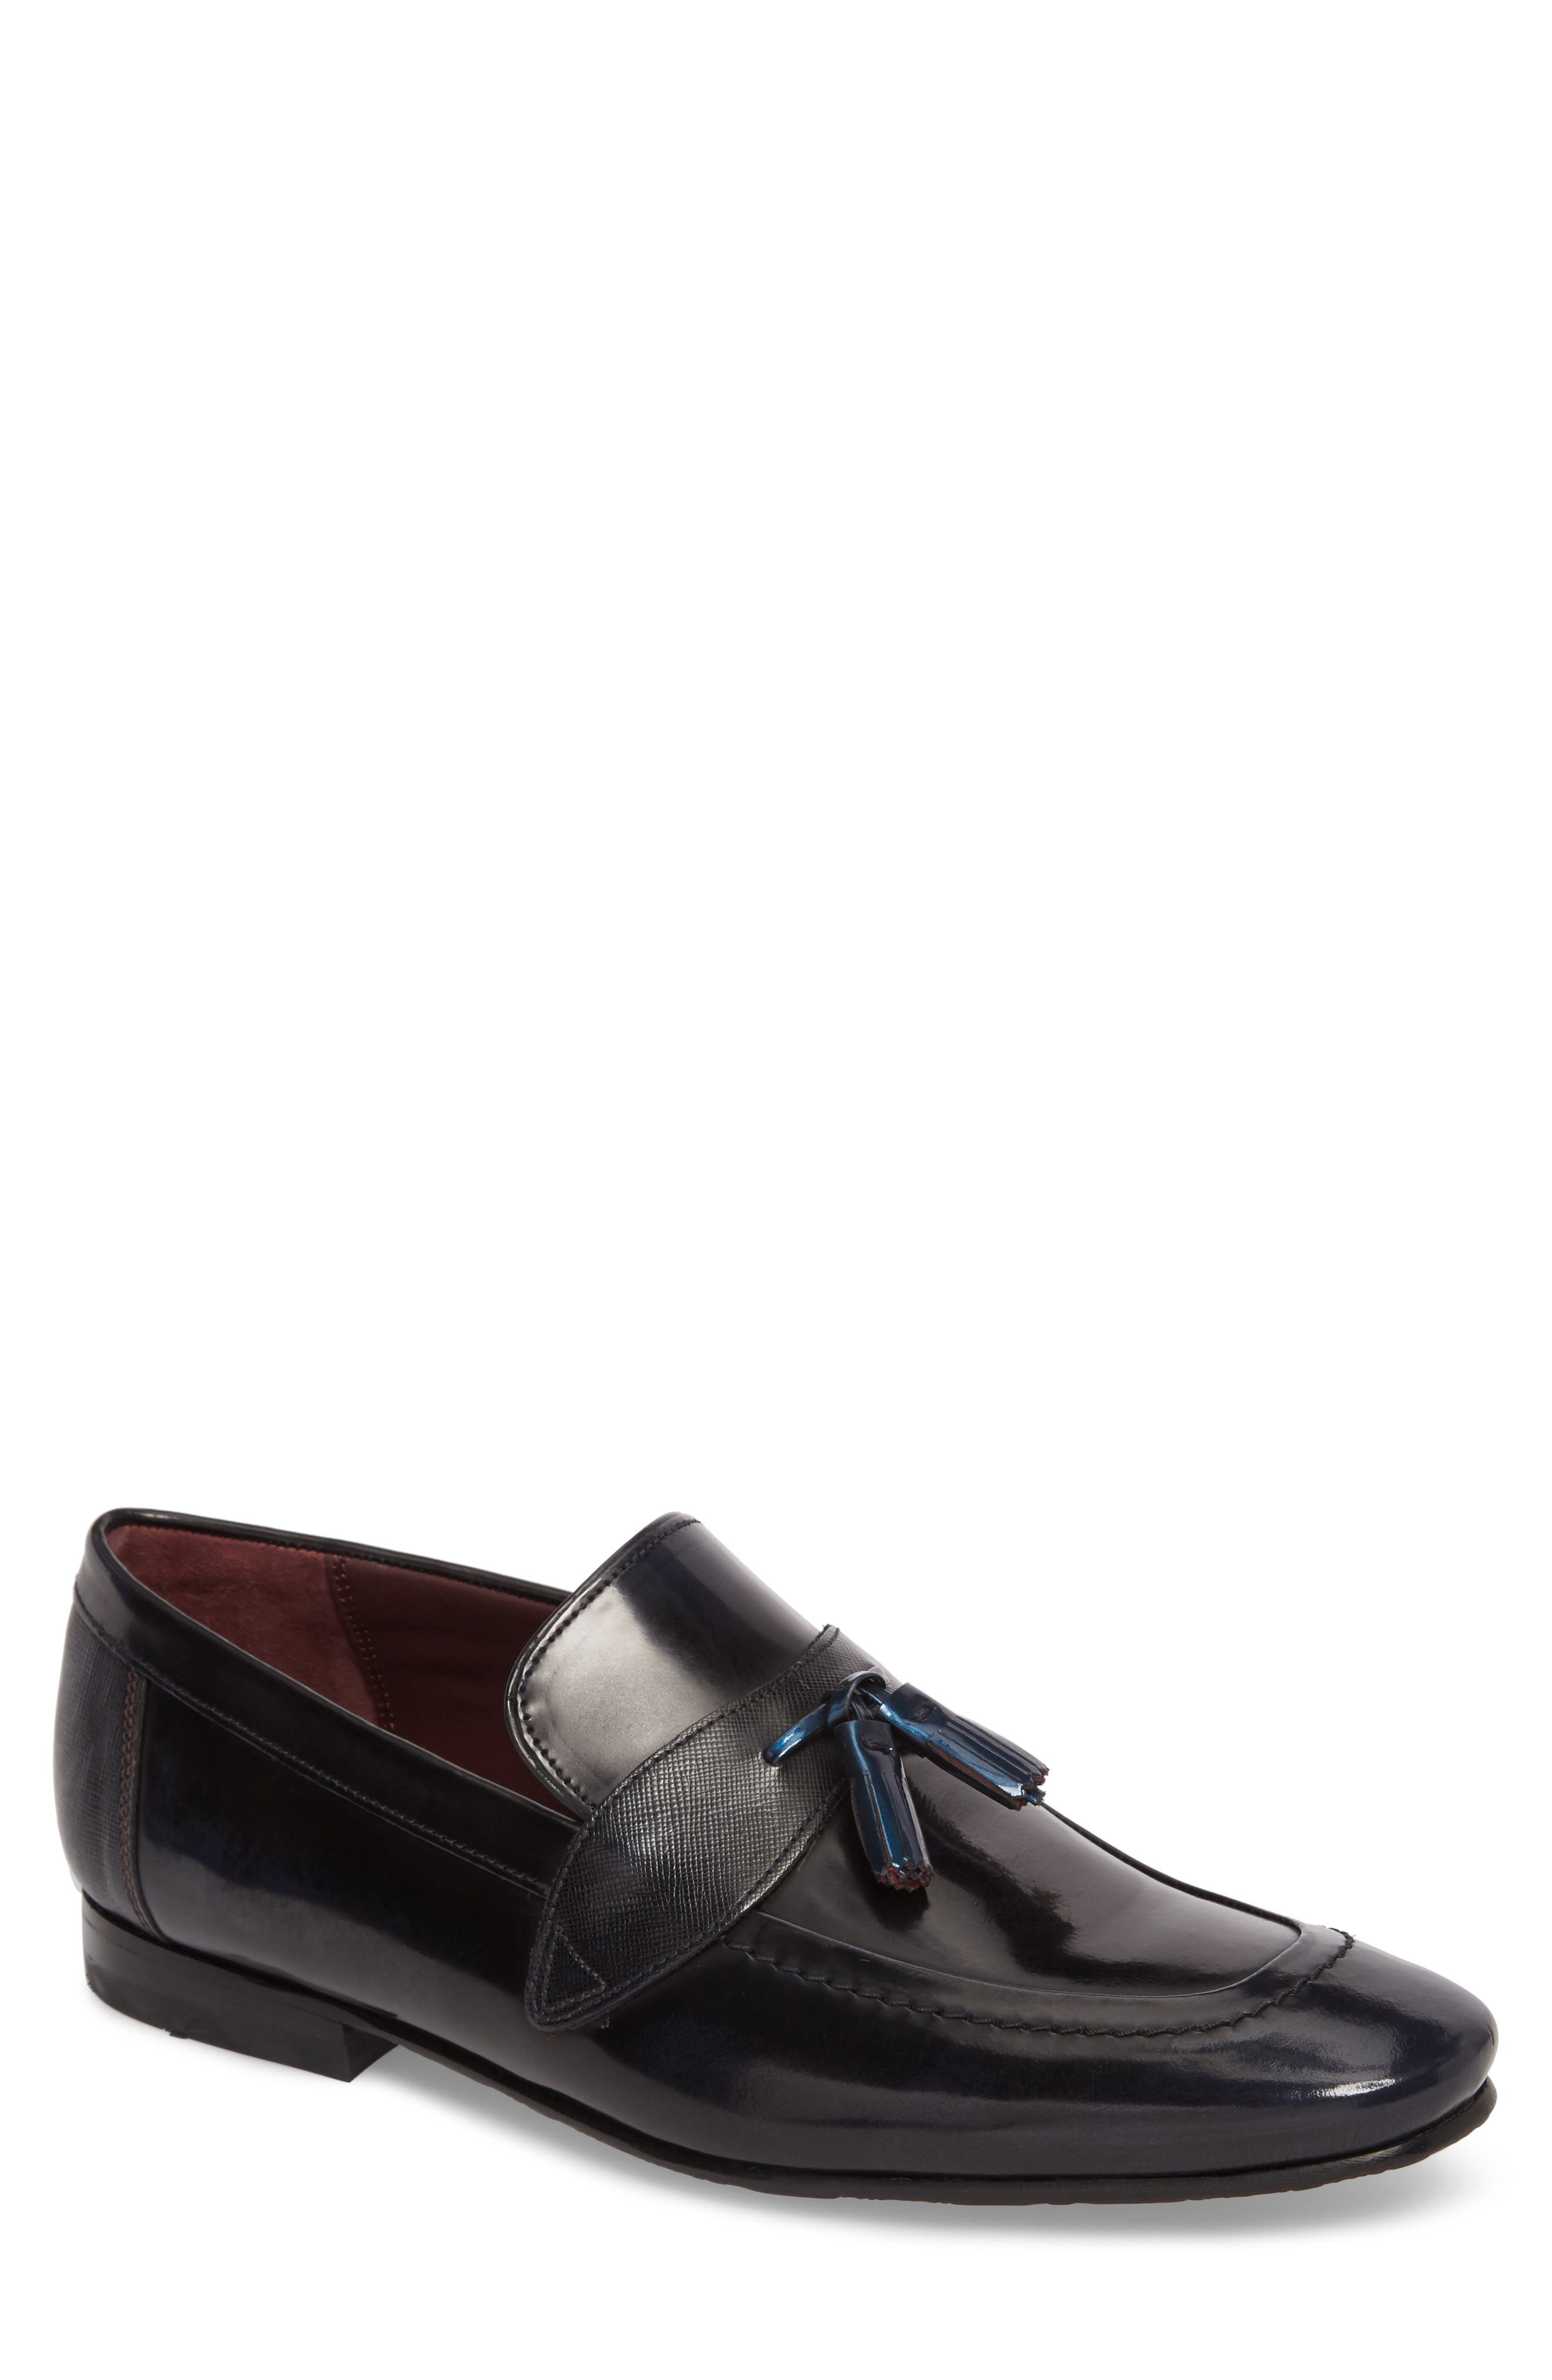 Grafit Tassel Loafer,                         Main,                         color, 416